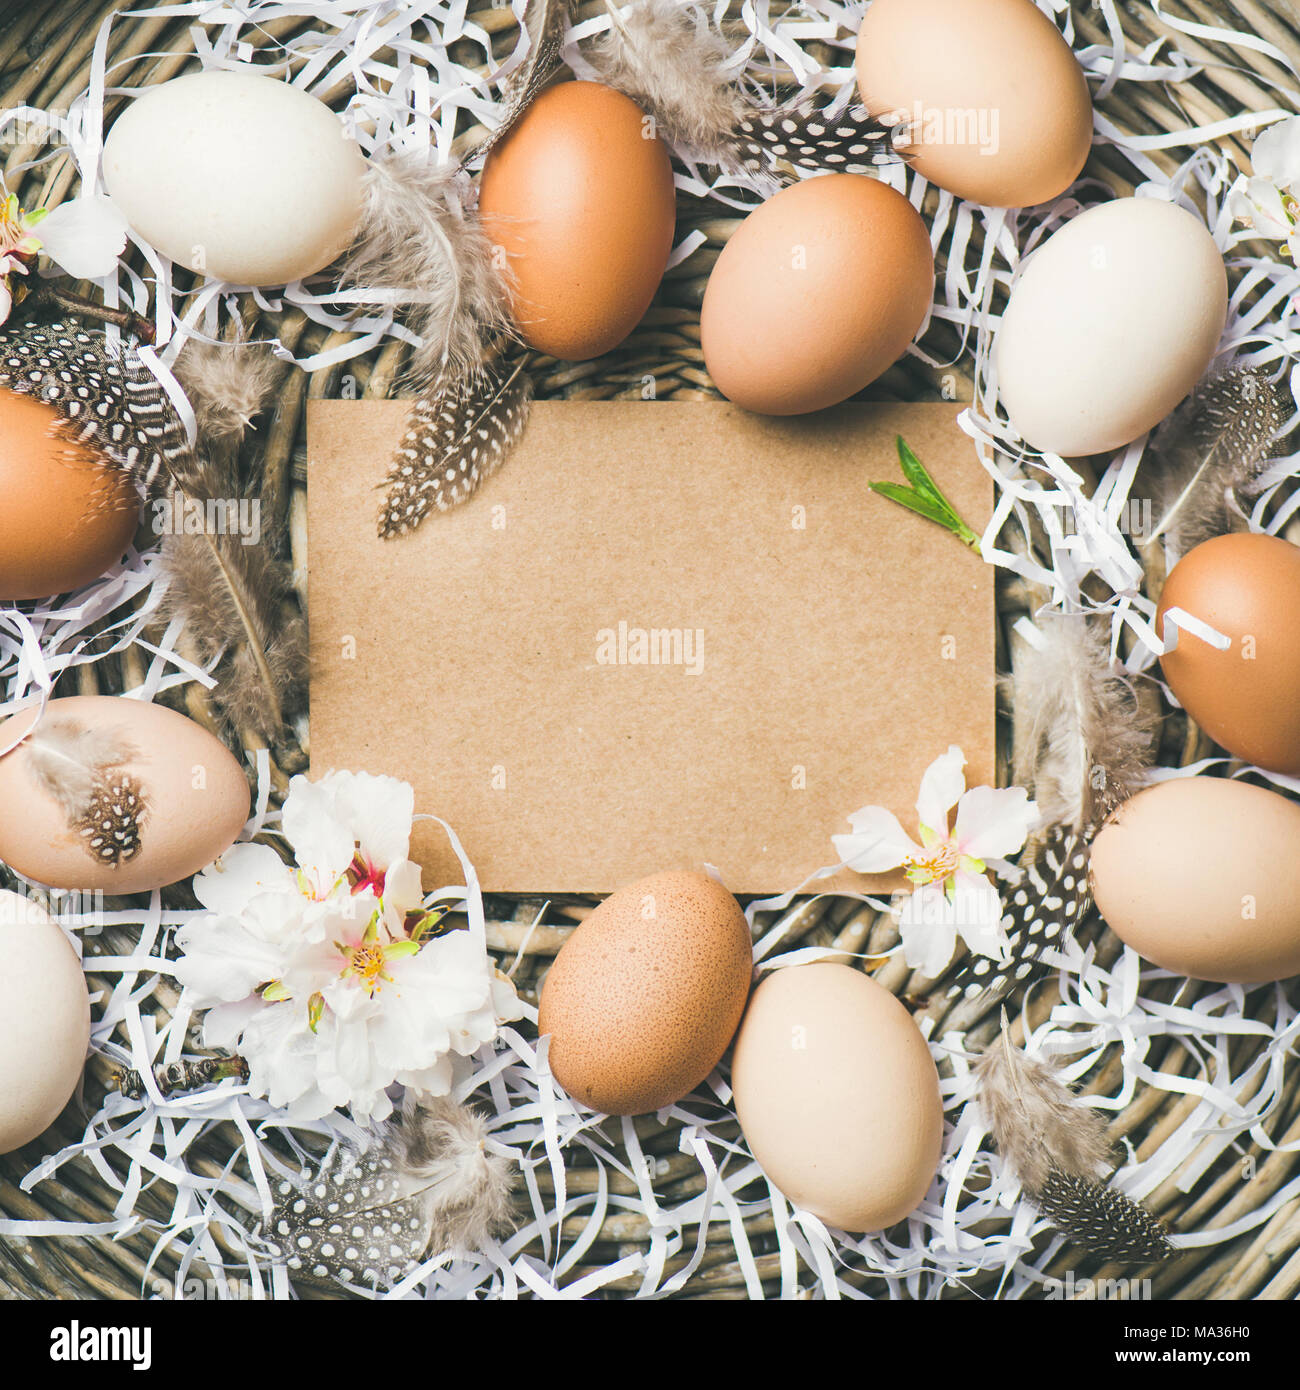 Natural colored eggs for Easter in basket, square crop - Stock Image